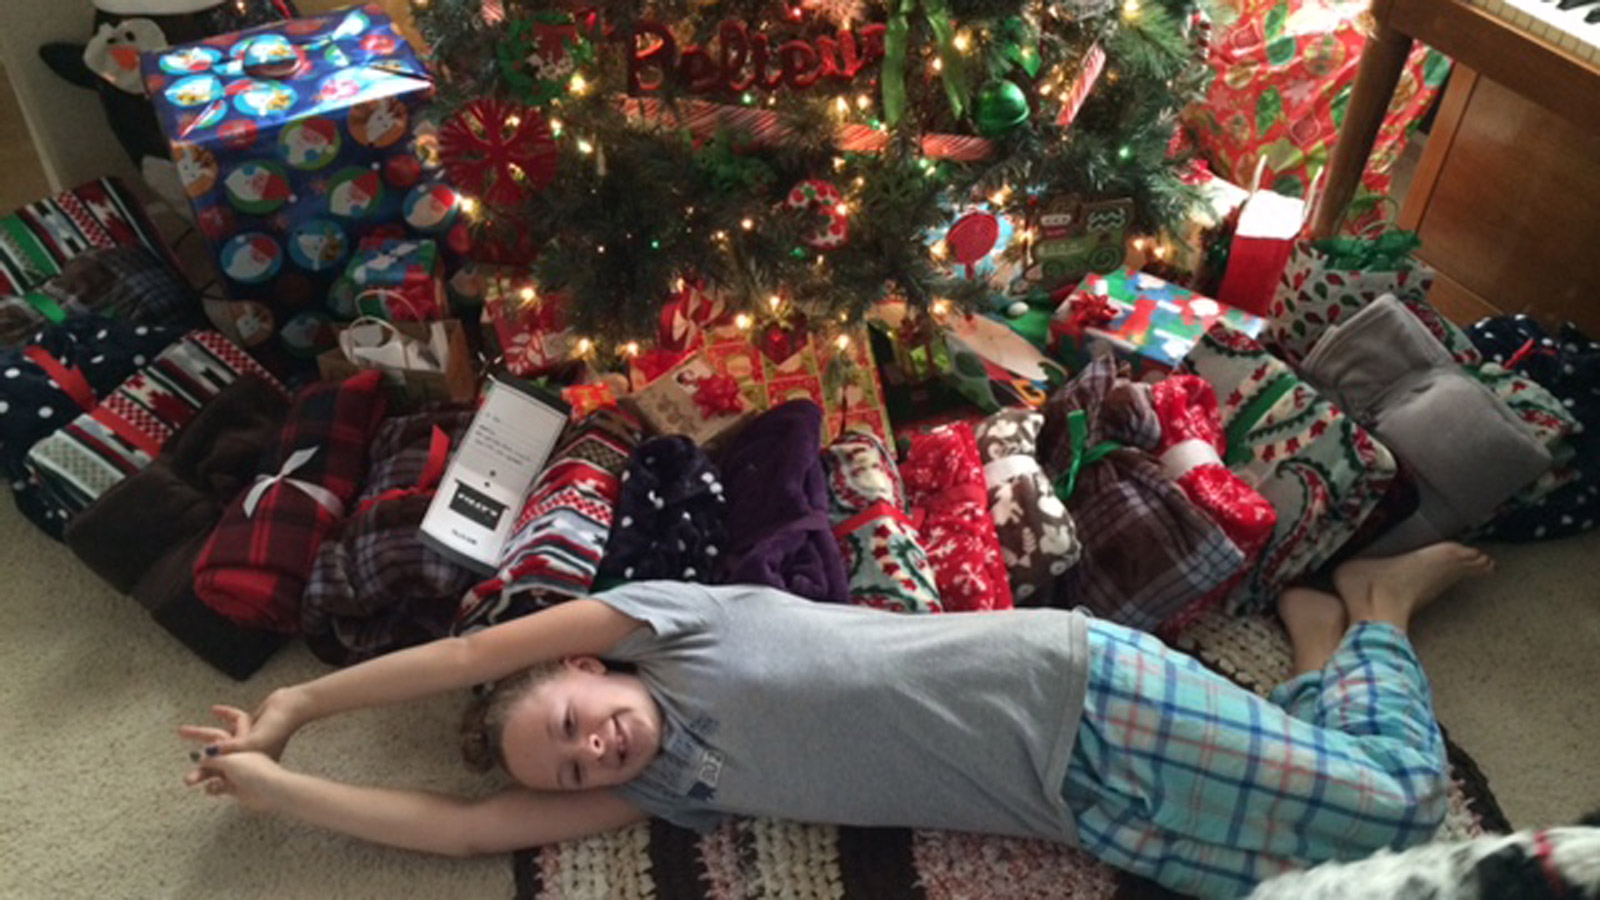 Kyra Dooley and her blankets (credit: Dooley Family)